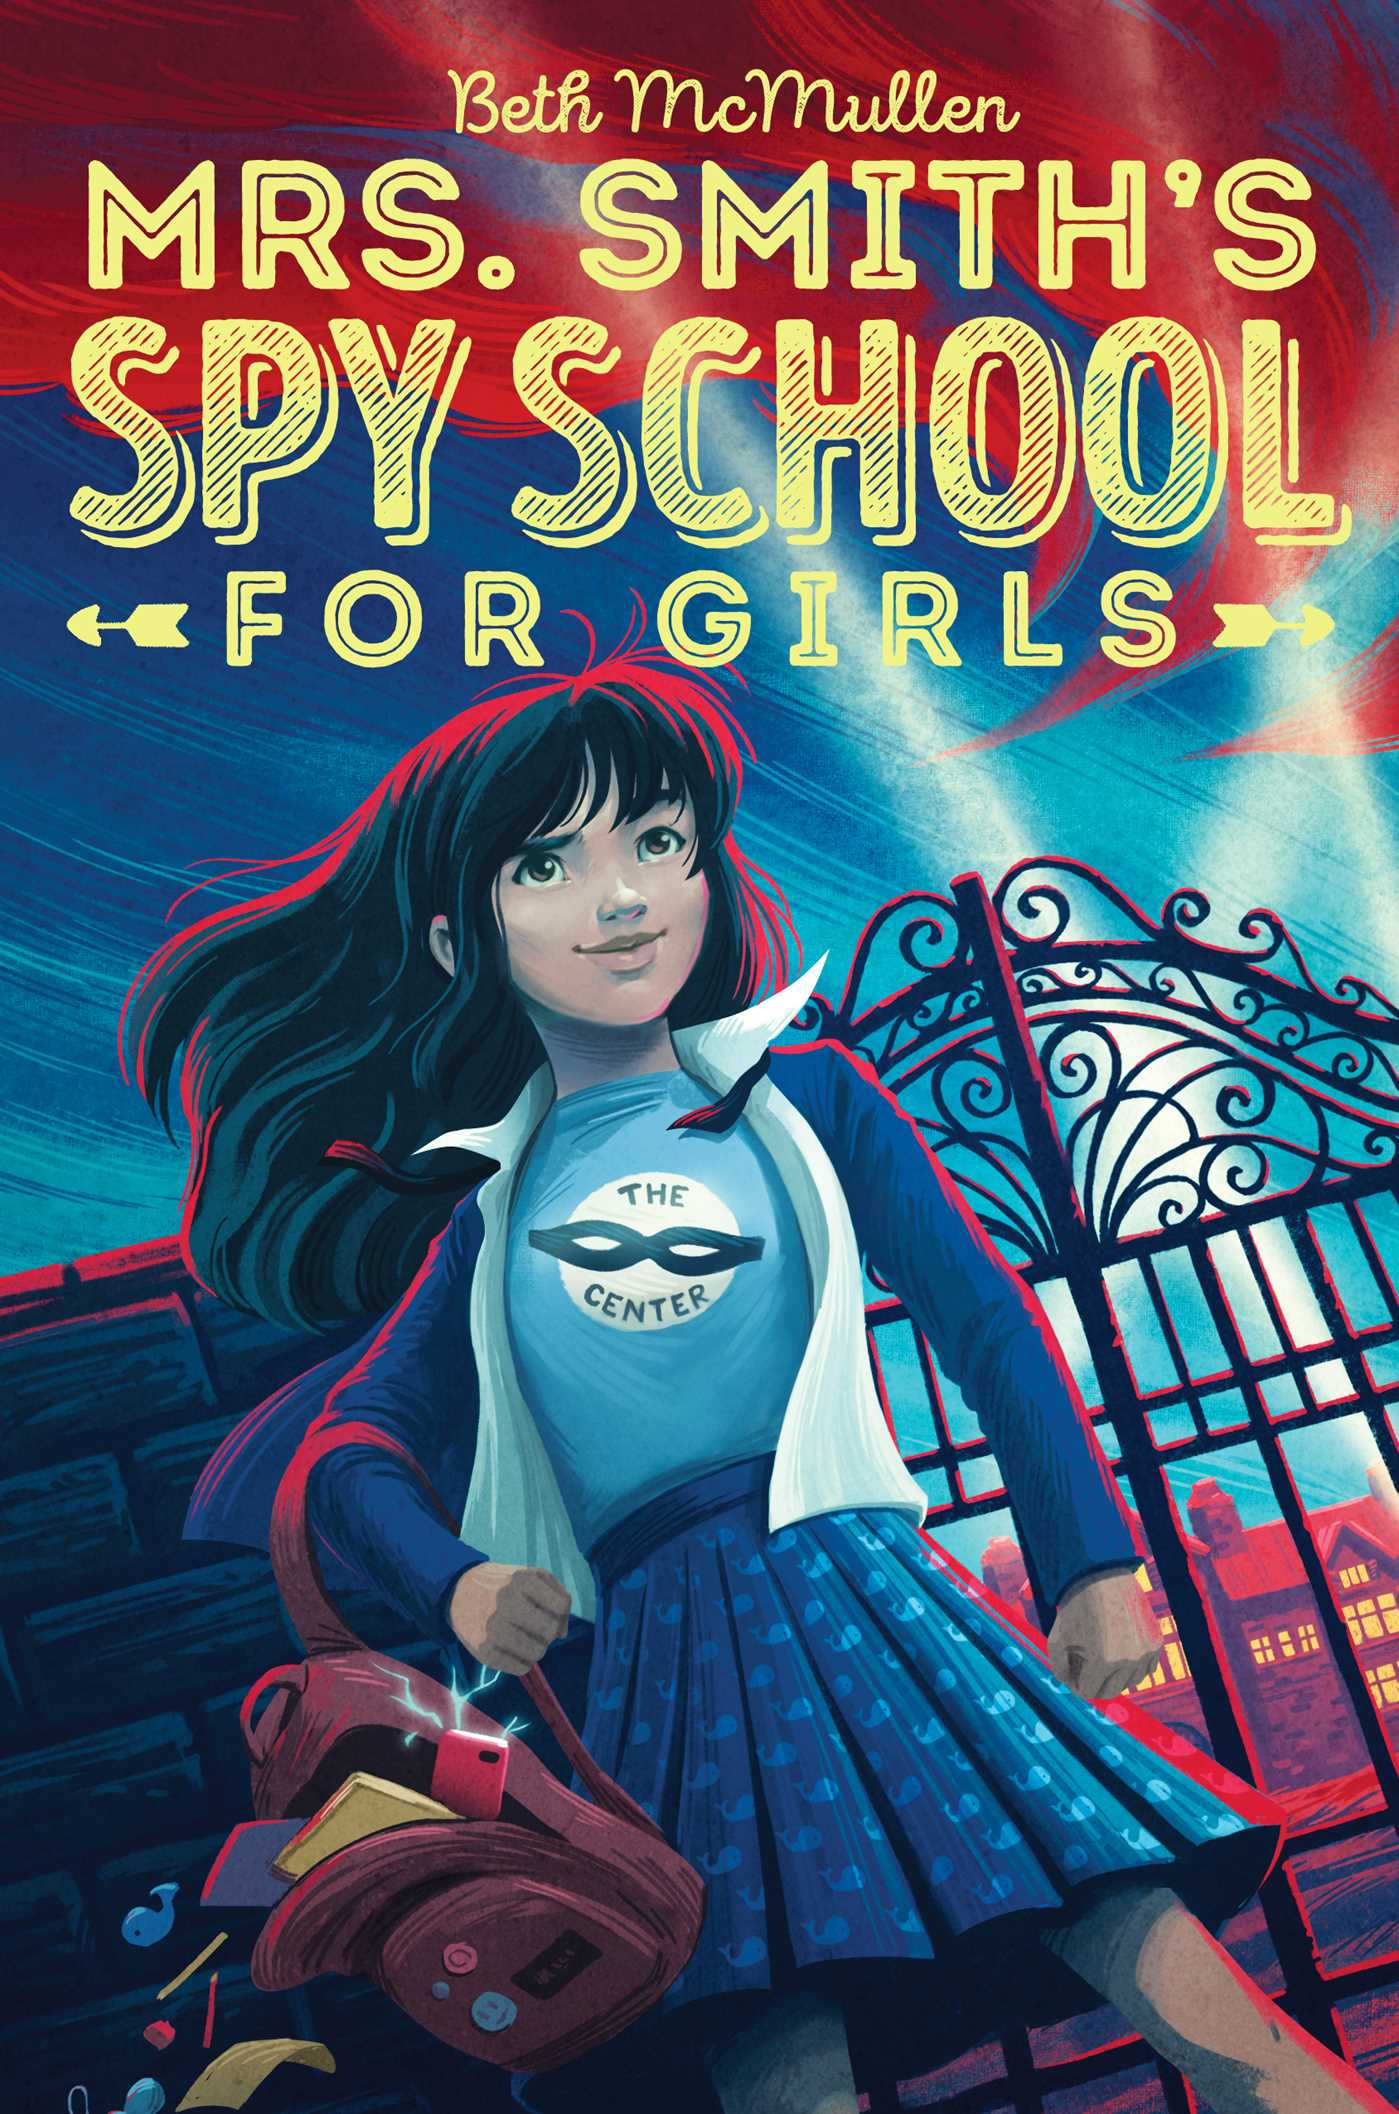 Mrs smiths spy school for girls 9781481490207 hr